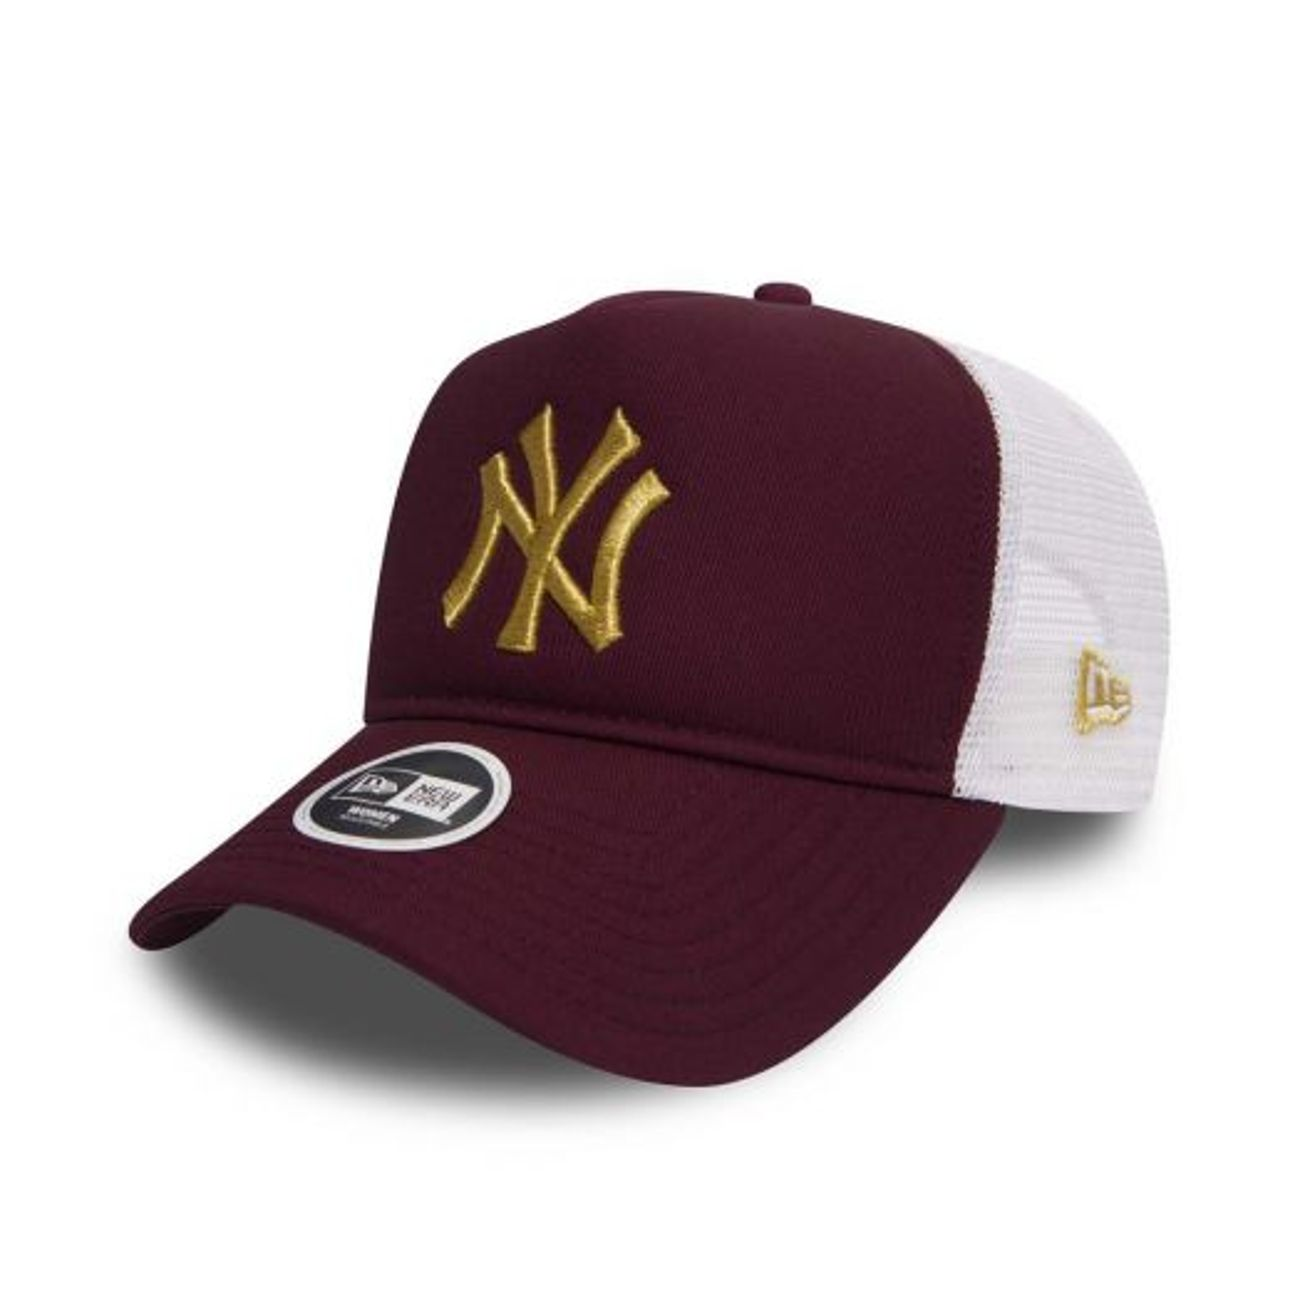 83d296c4237 casquette-trucker-femme-new-era-new-york-yankees-essential-truck-bordeaux-or 1 v3.jpeg